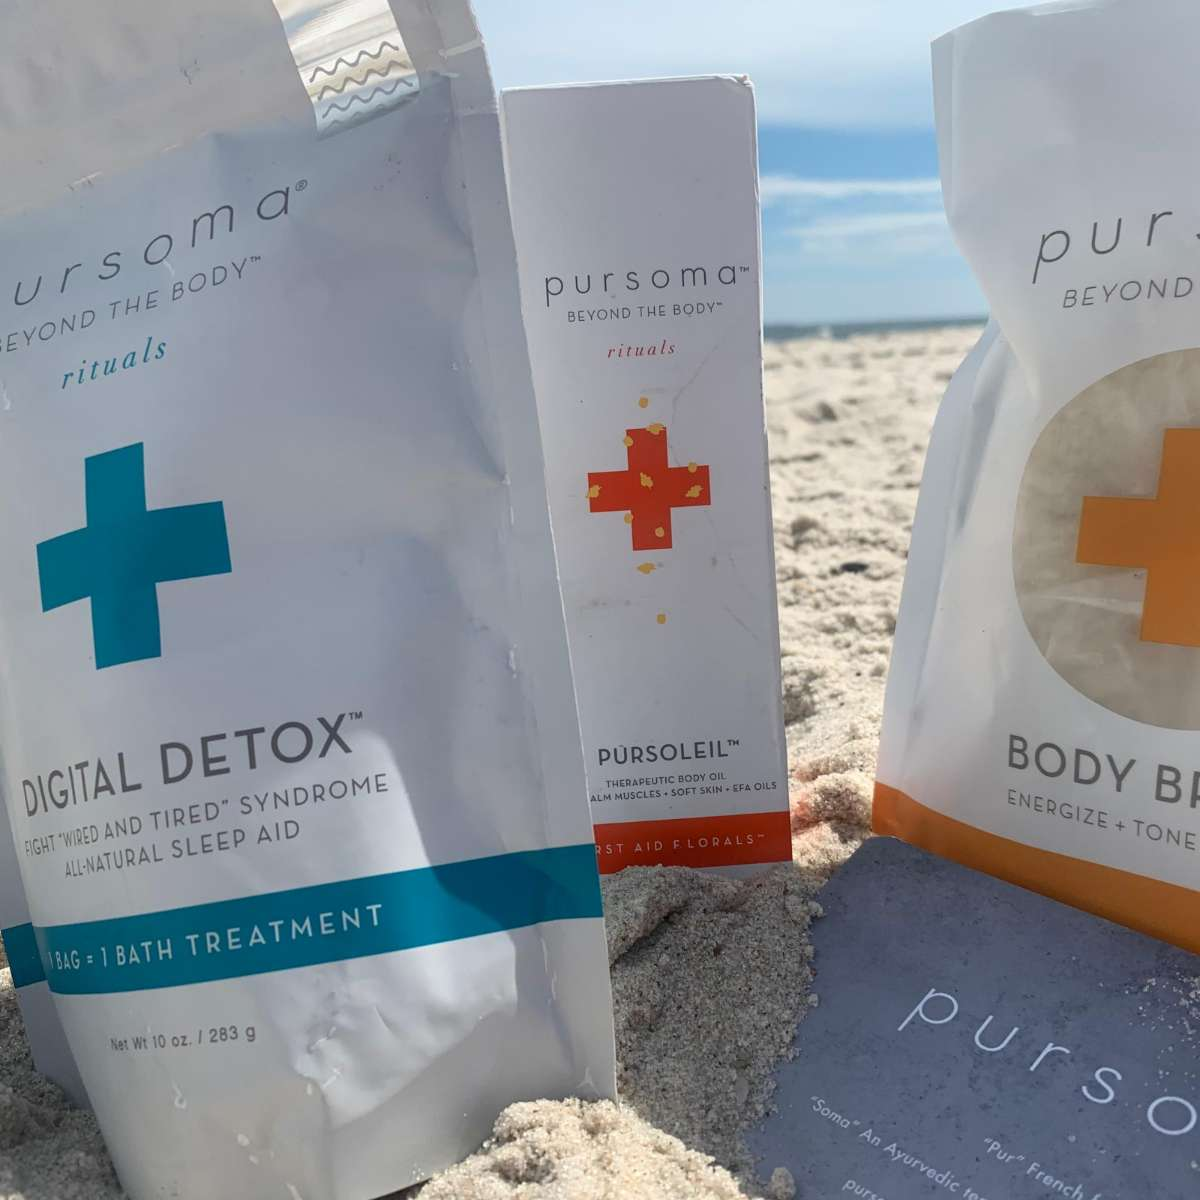 Check out these amazing beauty products by Pursoma